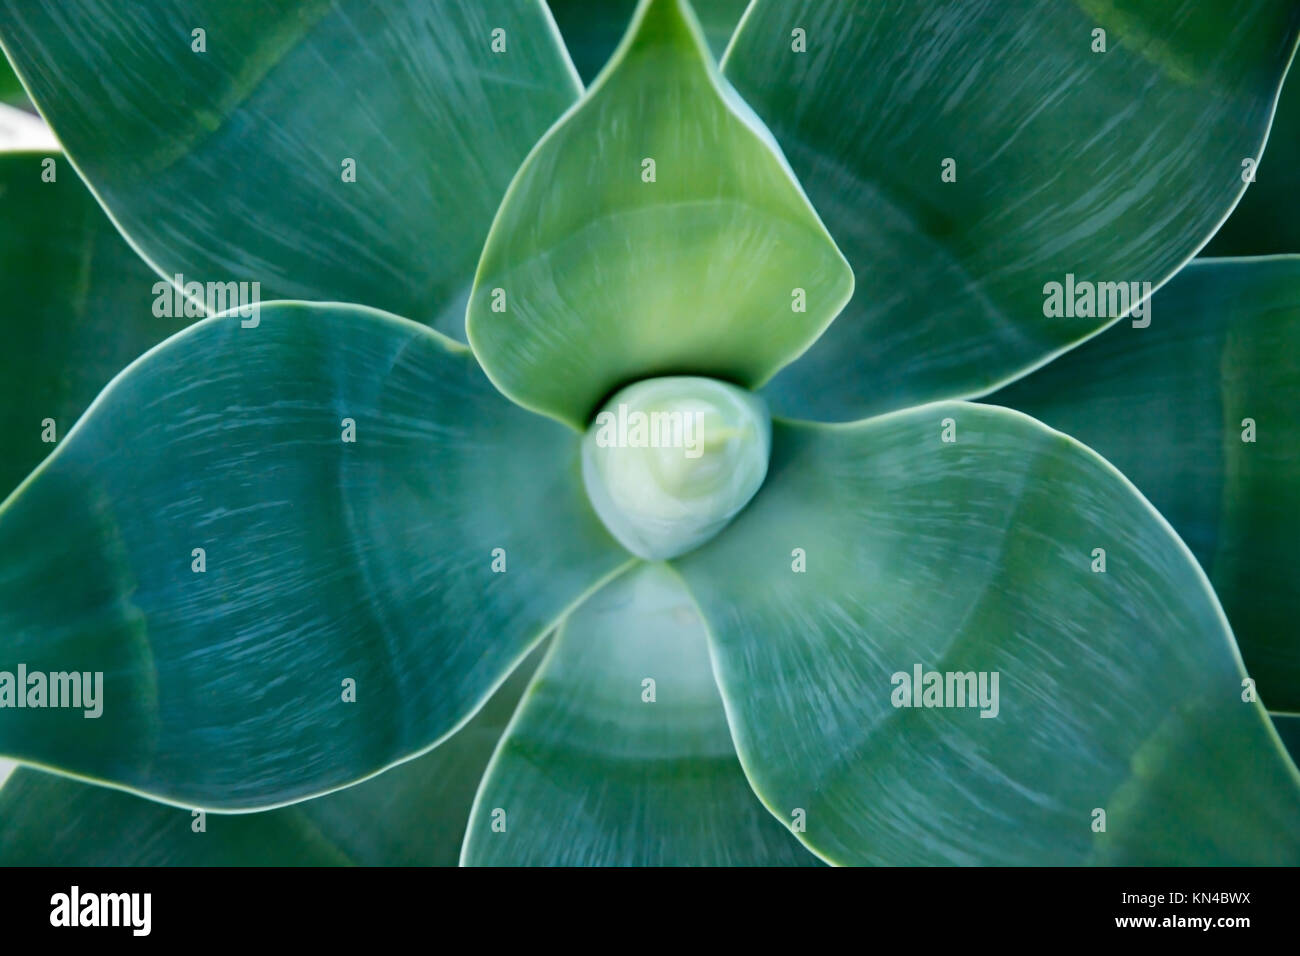 Organic abstract Agave attenuata, lion's tail, swan's neck, foxtail. - Stock Image